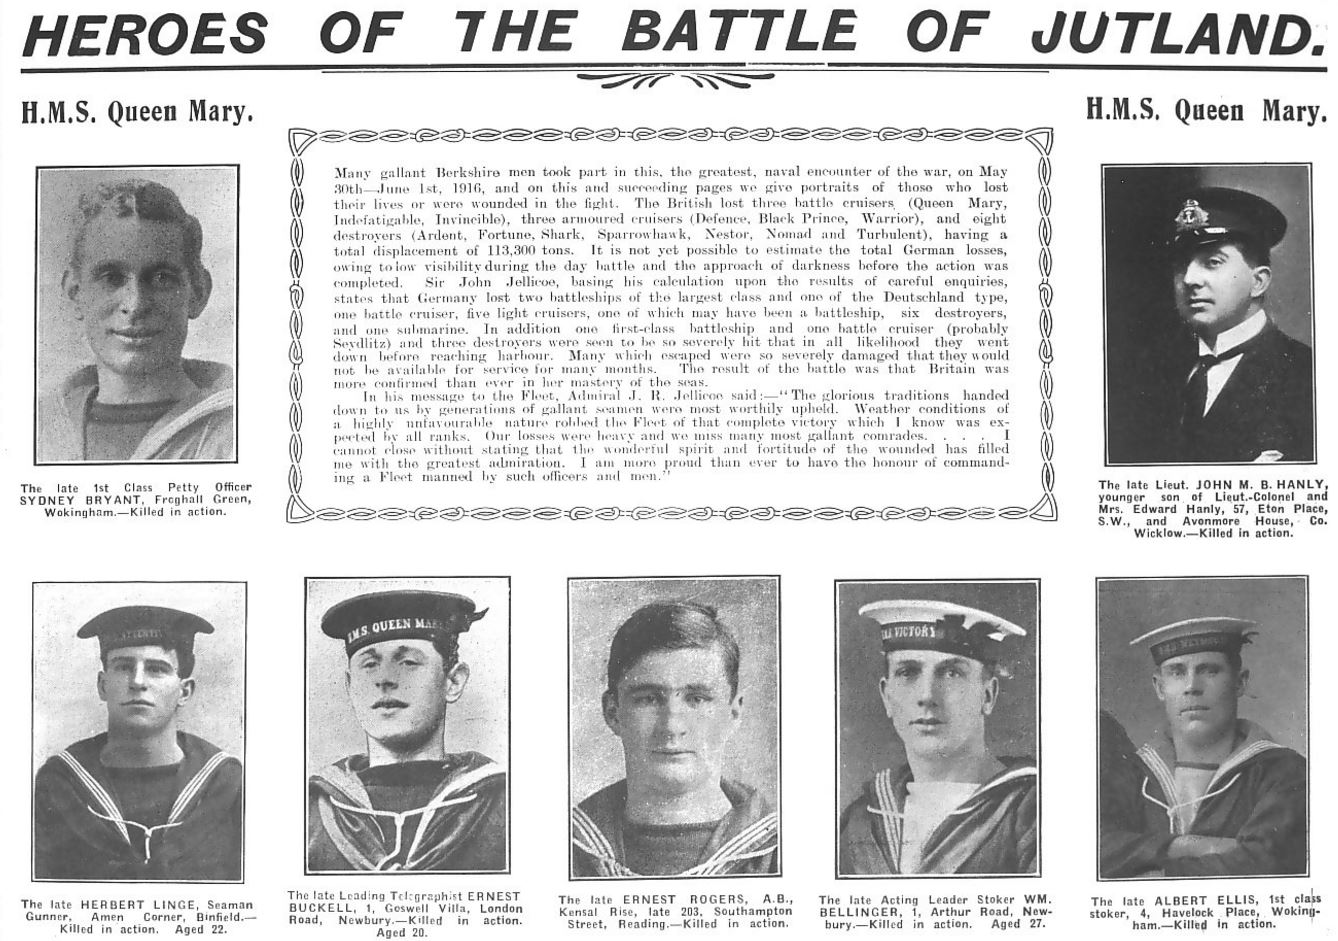 BATTLE OF JUTLAND 1st JUNE 1916 DIEULOIS